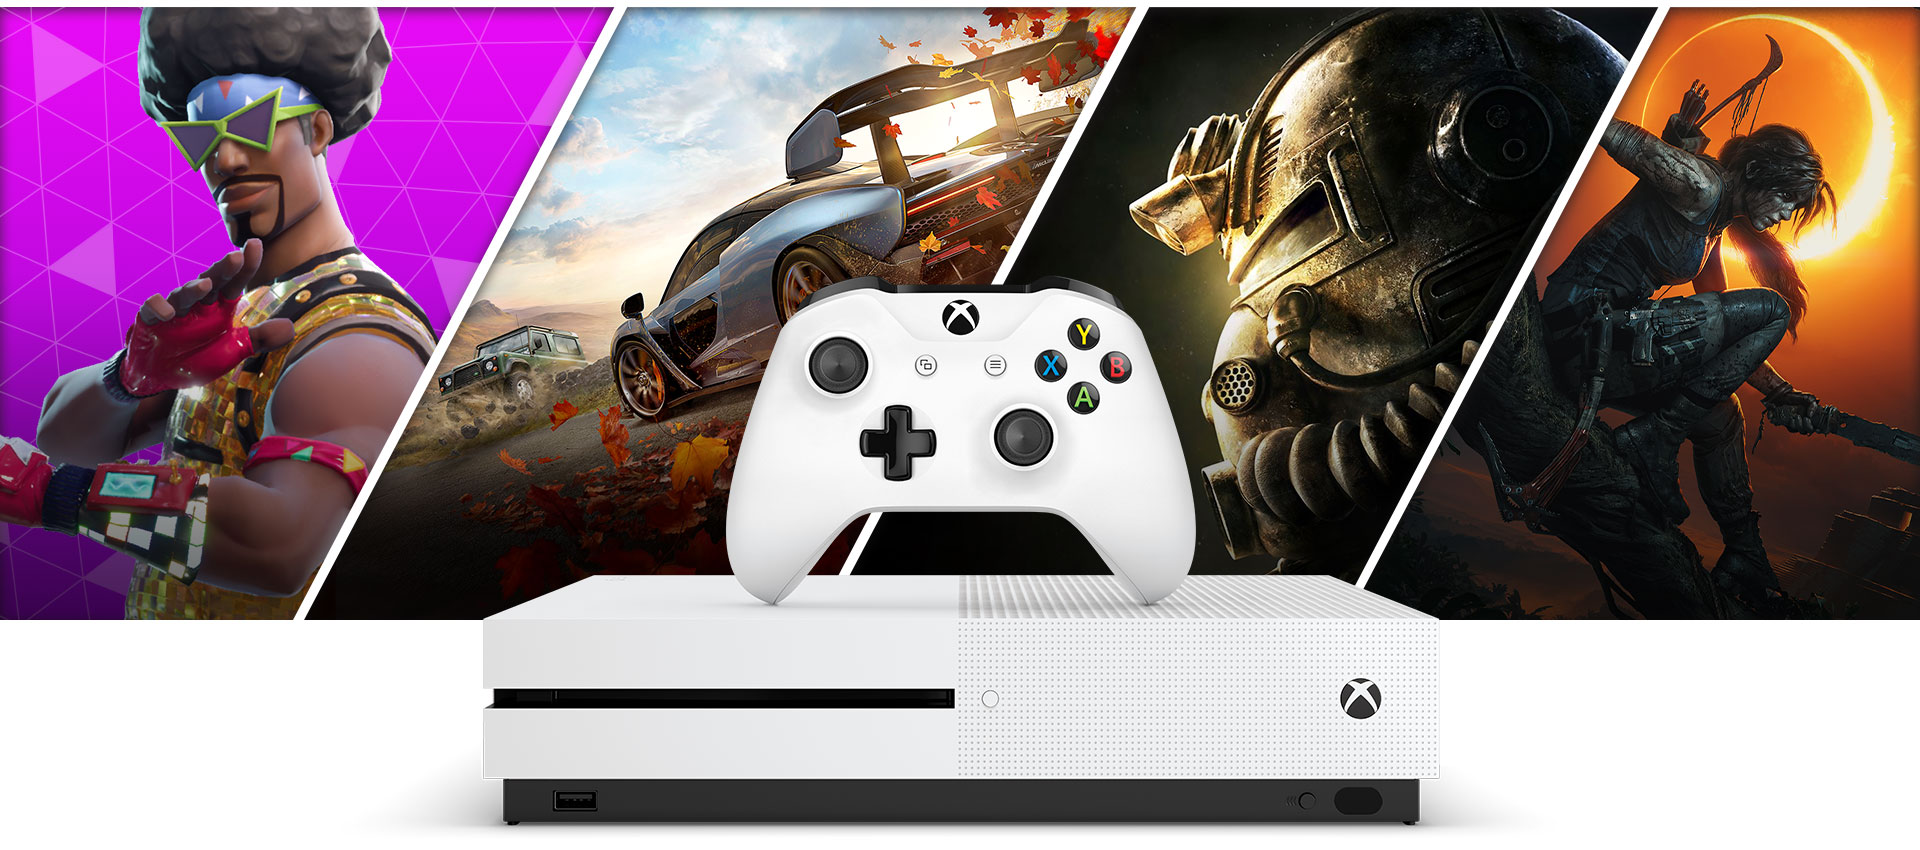 Fortnite, Forza Horizon 4, Fallout 76 and Shadow of the Tomb Raider graphics behind an Xbox One S and White Xbox Controller